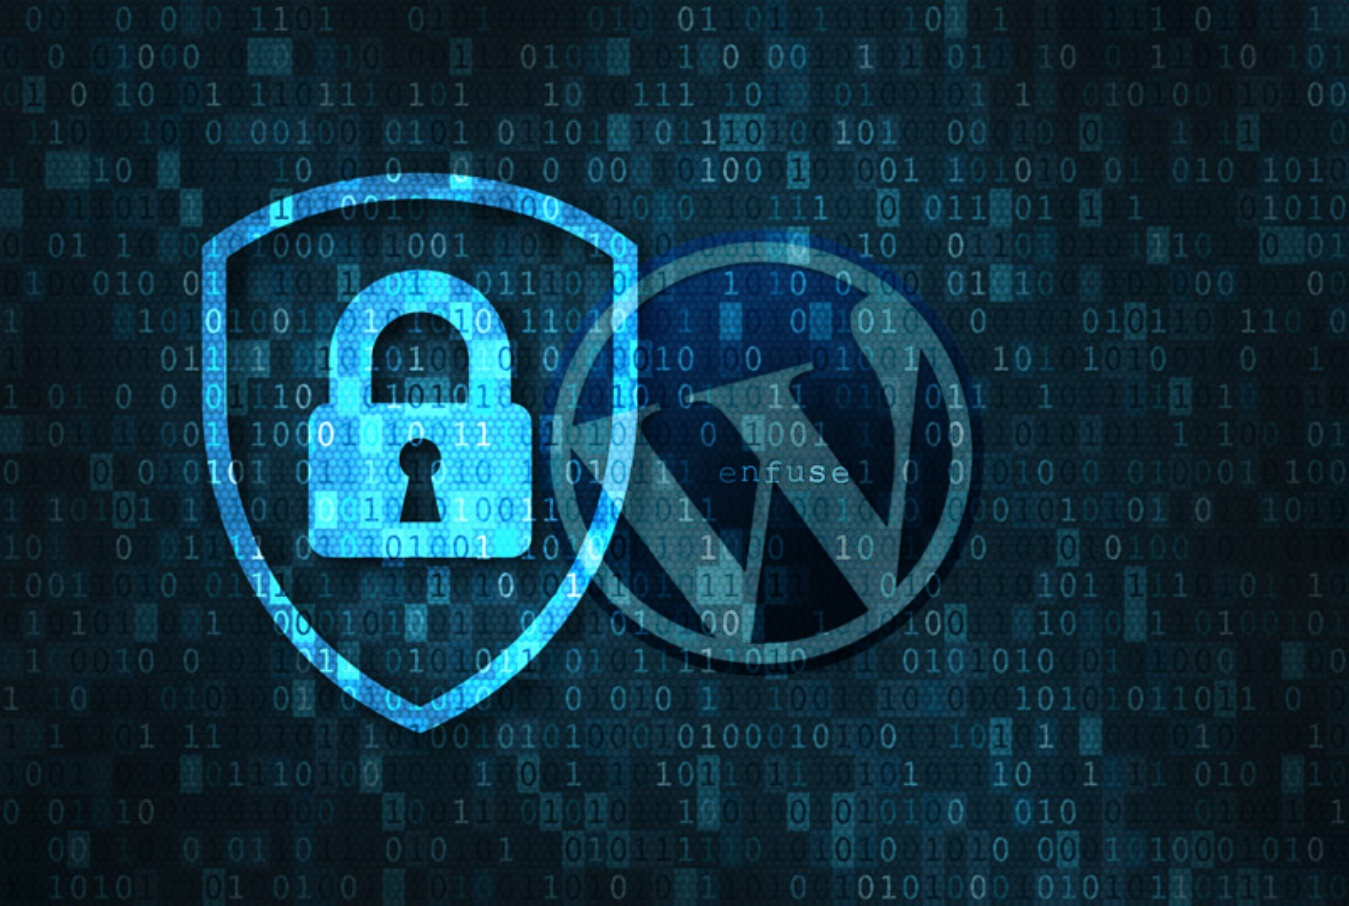 Wordpress-security-steps-to-assess-an-employee-before-you-grant-admin-access-on-wordpress